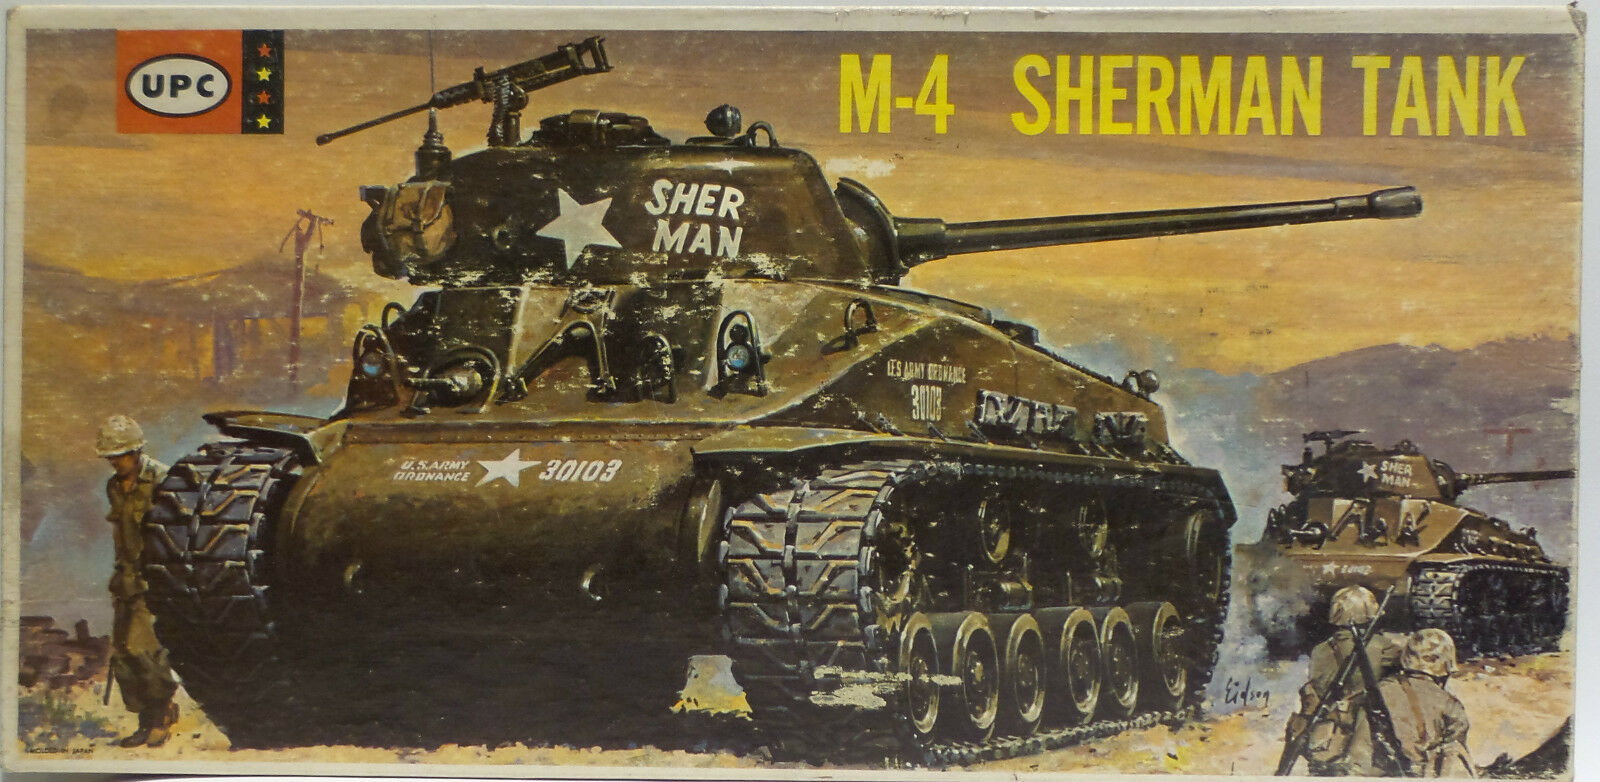 ARMY   M-4 SHERMAN TANK MODEL KIT MADE BY UPC - 1 40 SCALE